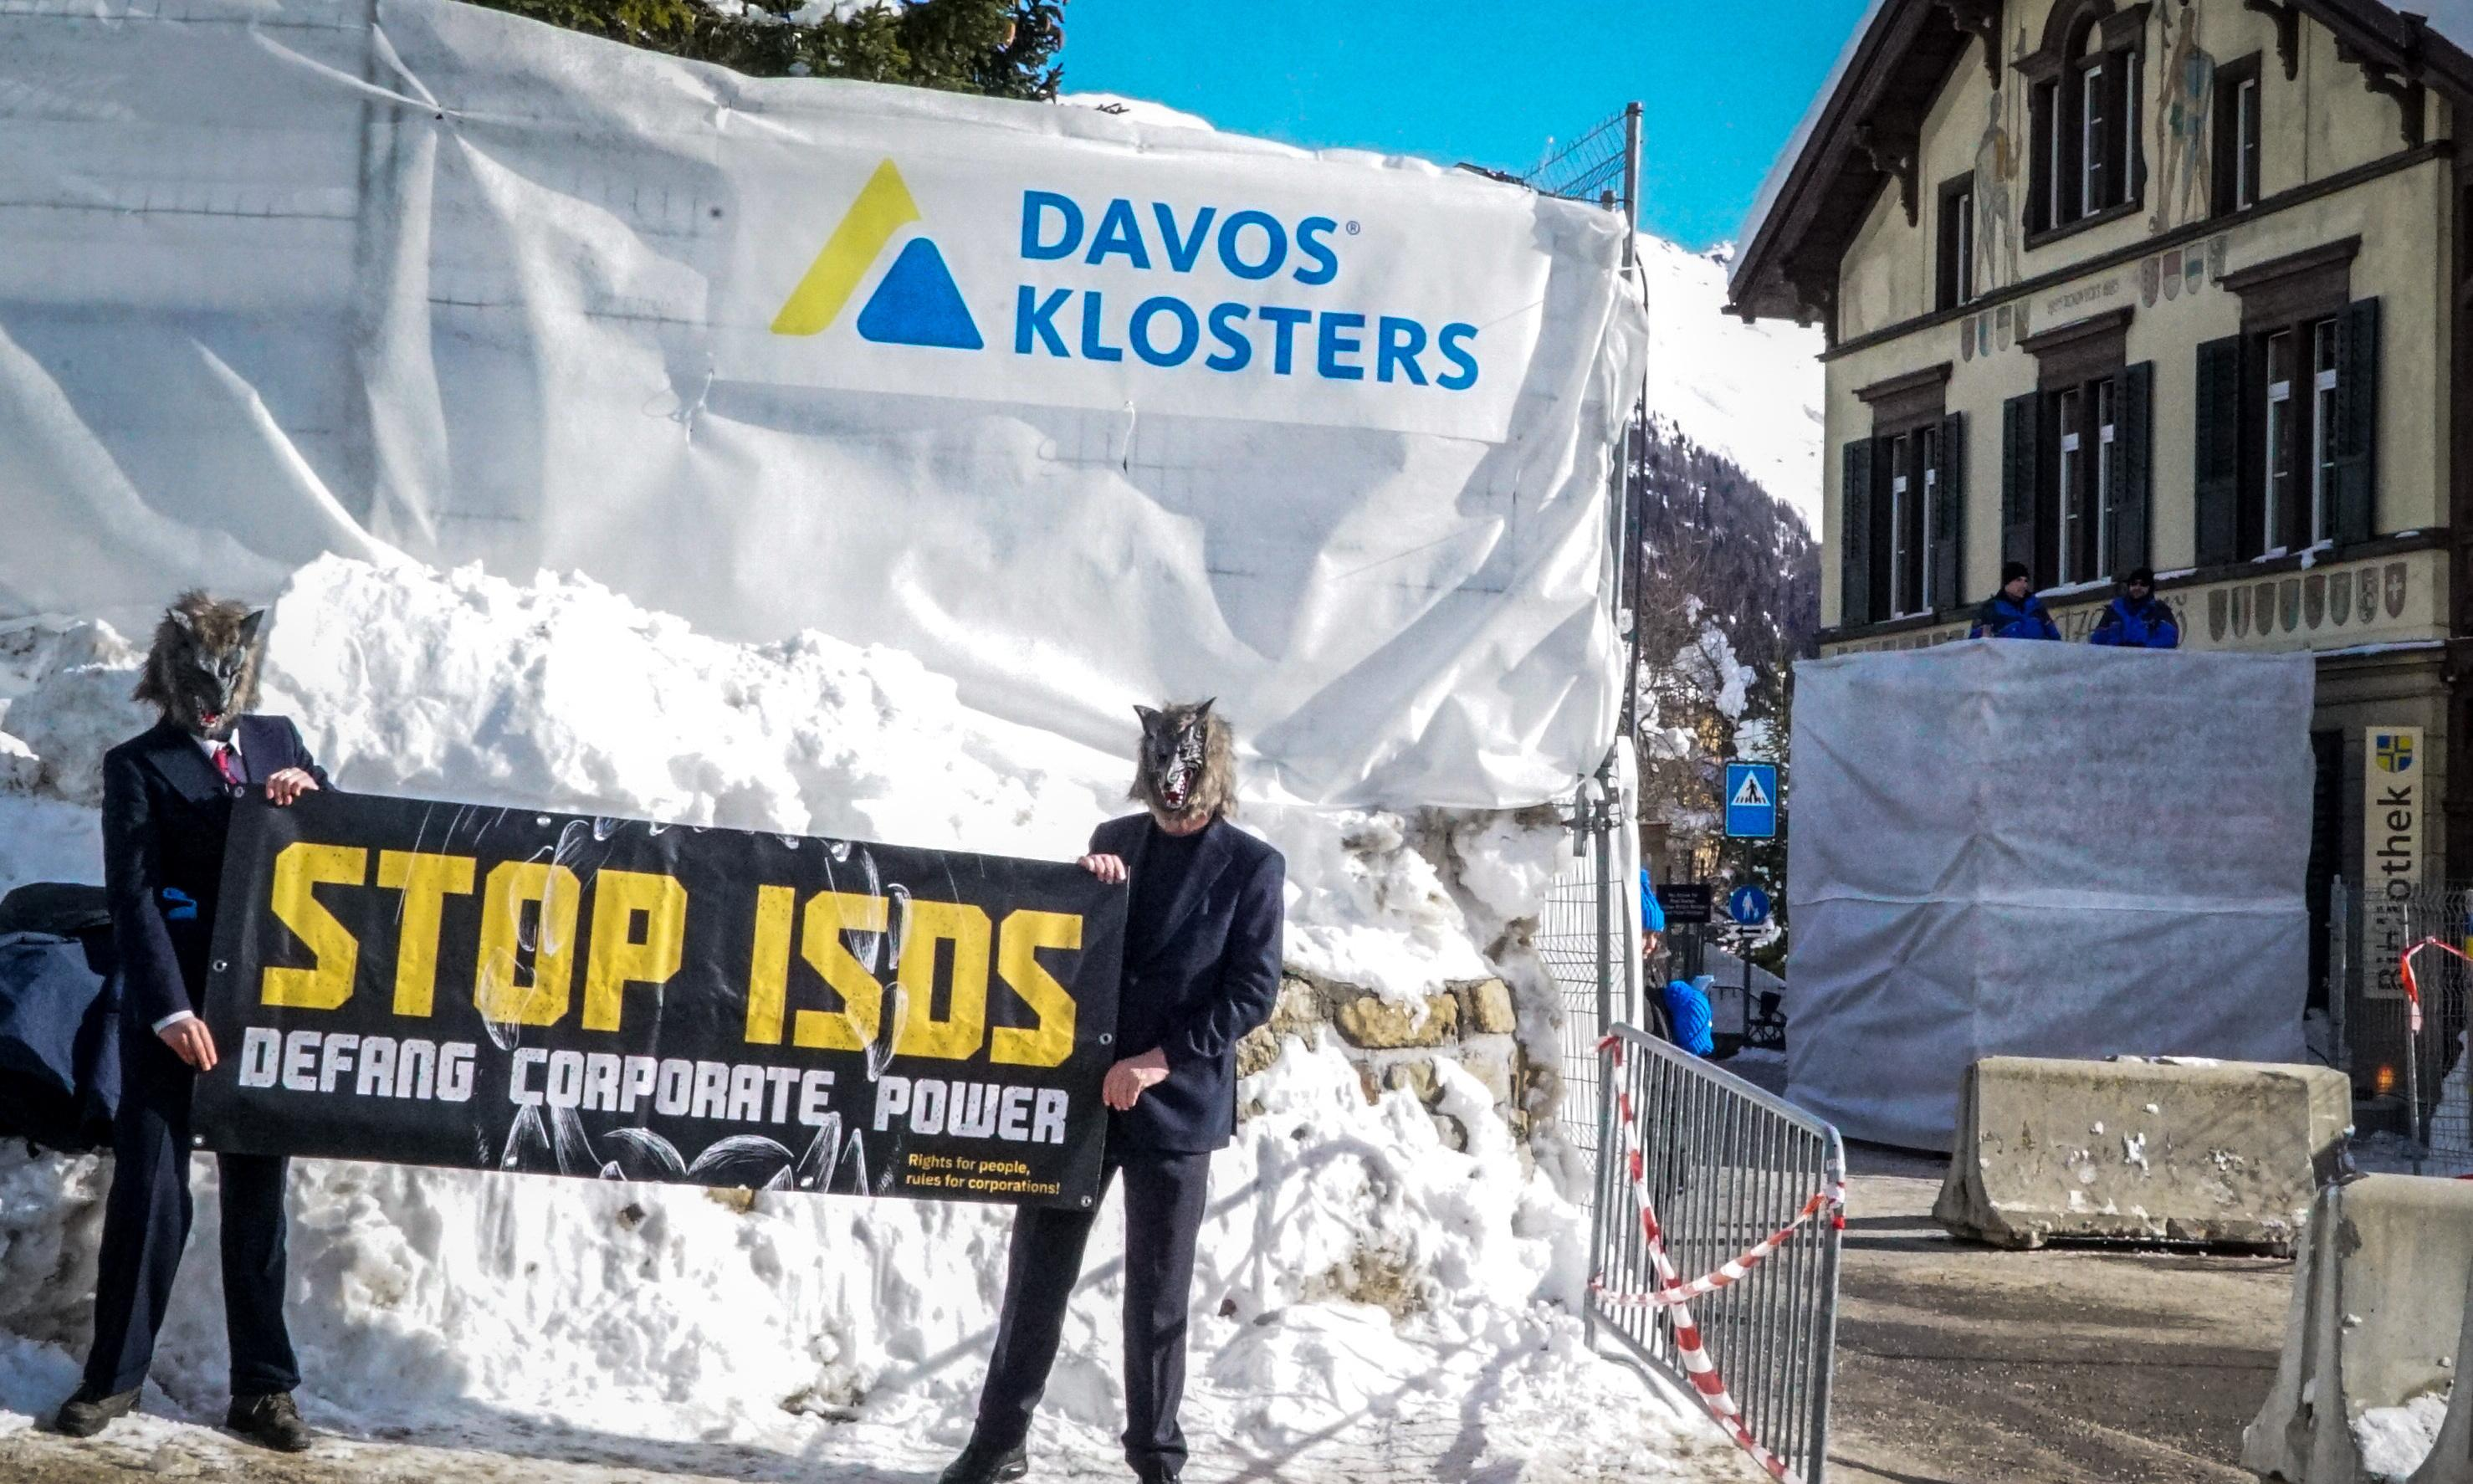 The Guardian view on Davos: elites without answers